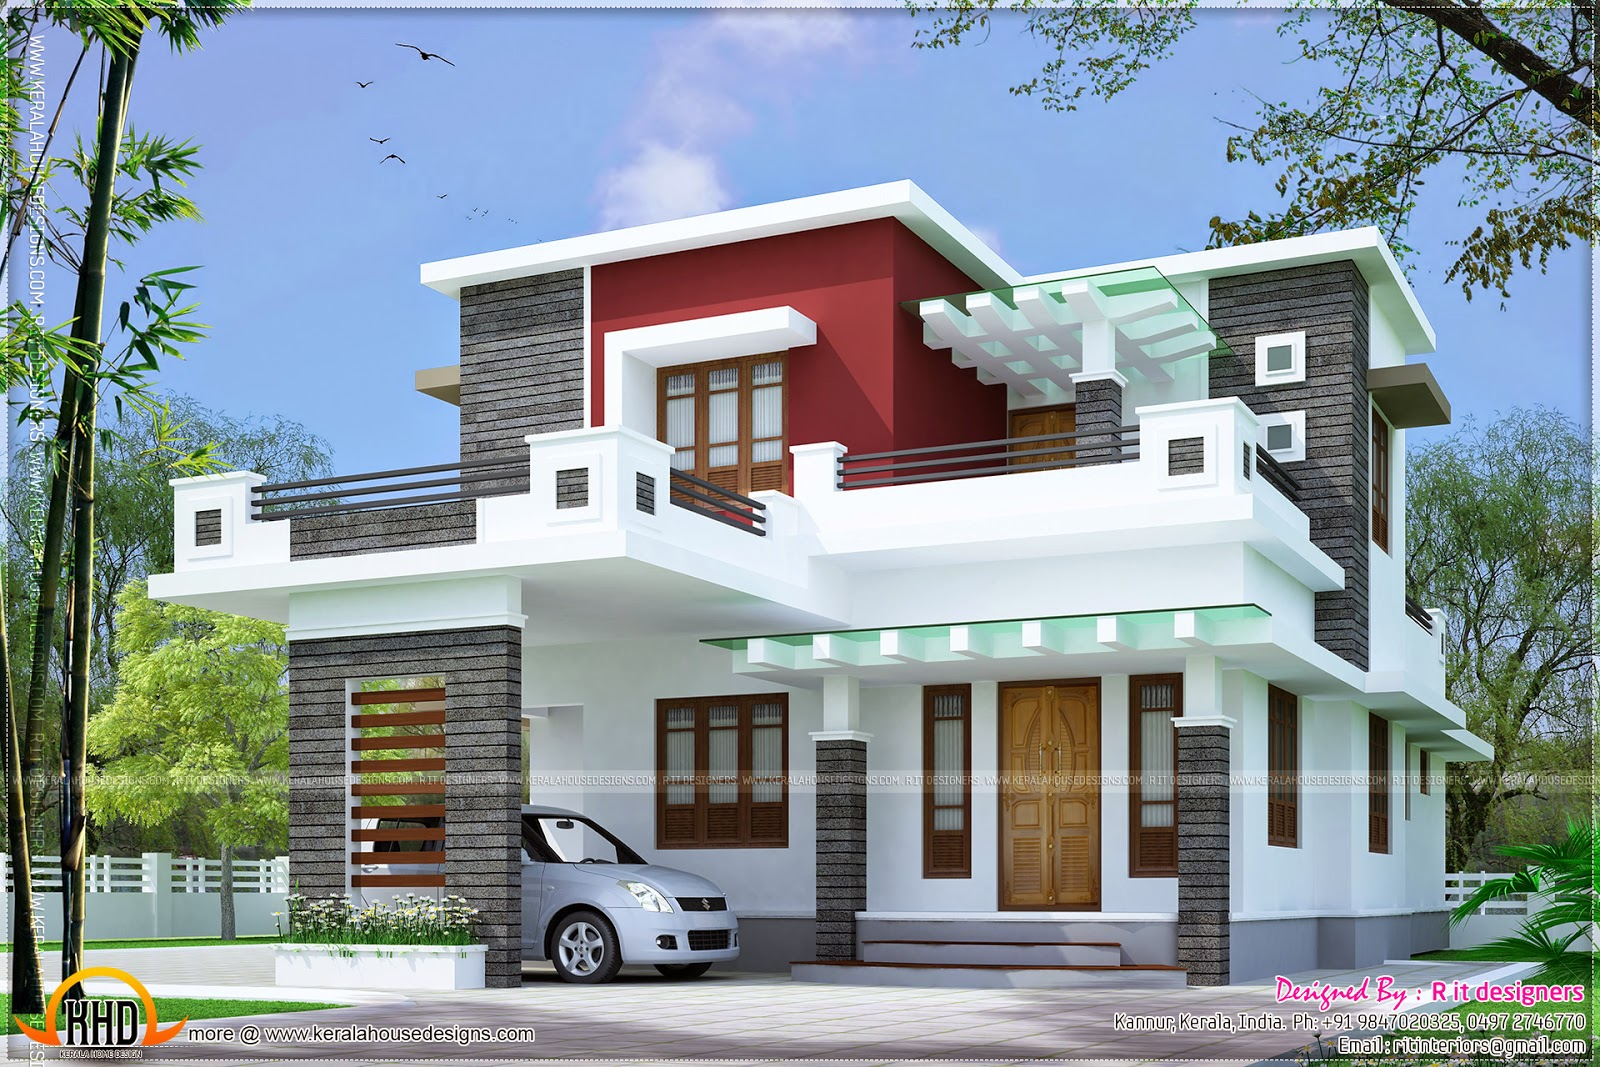 1959 square feet contemporary house exterior kerala home for Kerala home designs photos in double floor